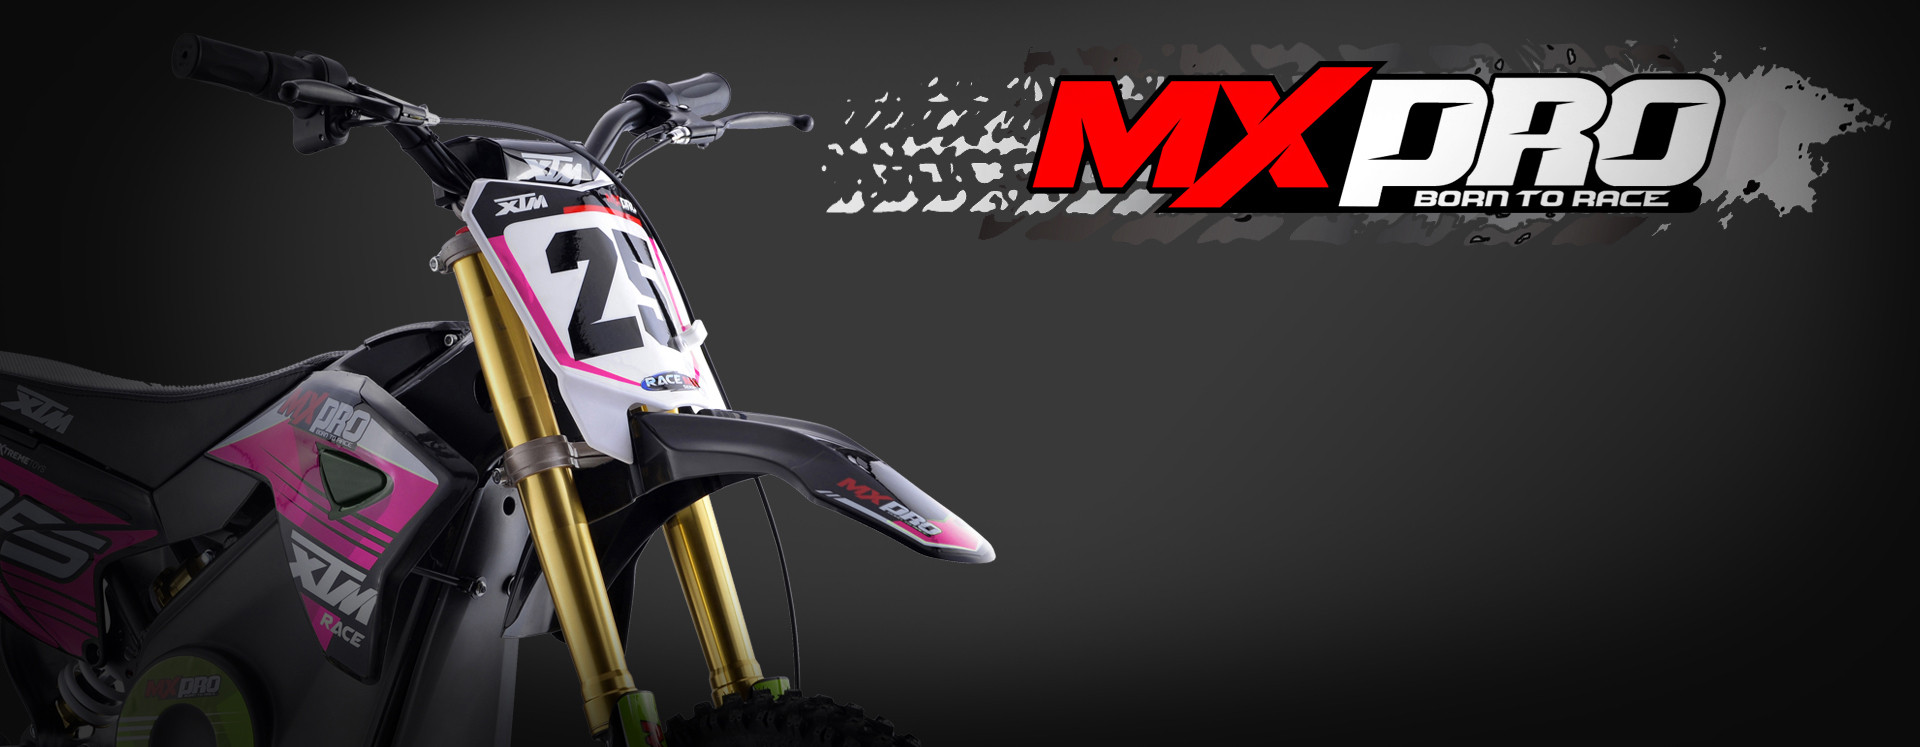 XTM MX-PRO 48V 1300W LITHIUM DIRT BIKE PINK